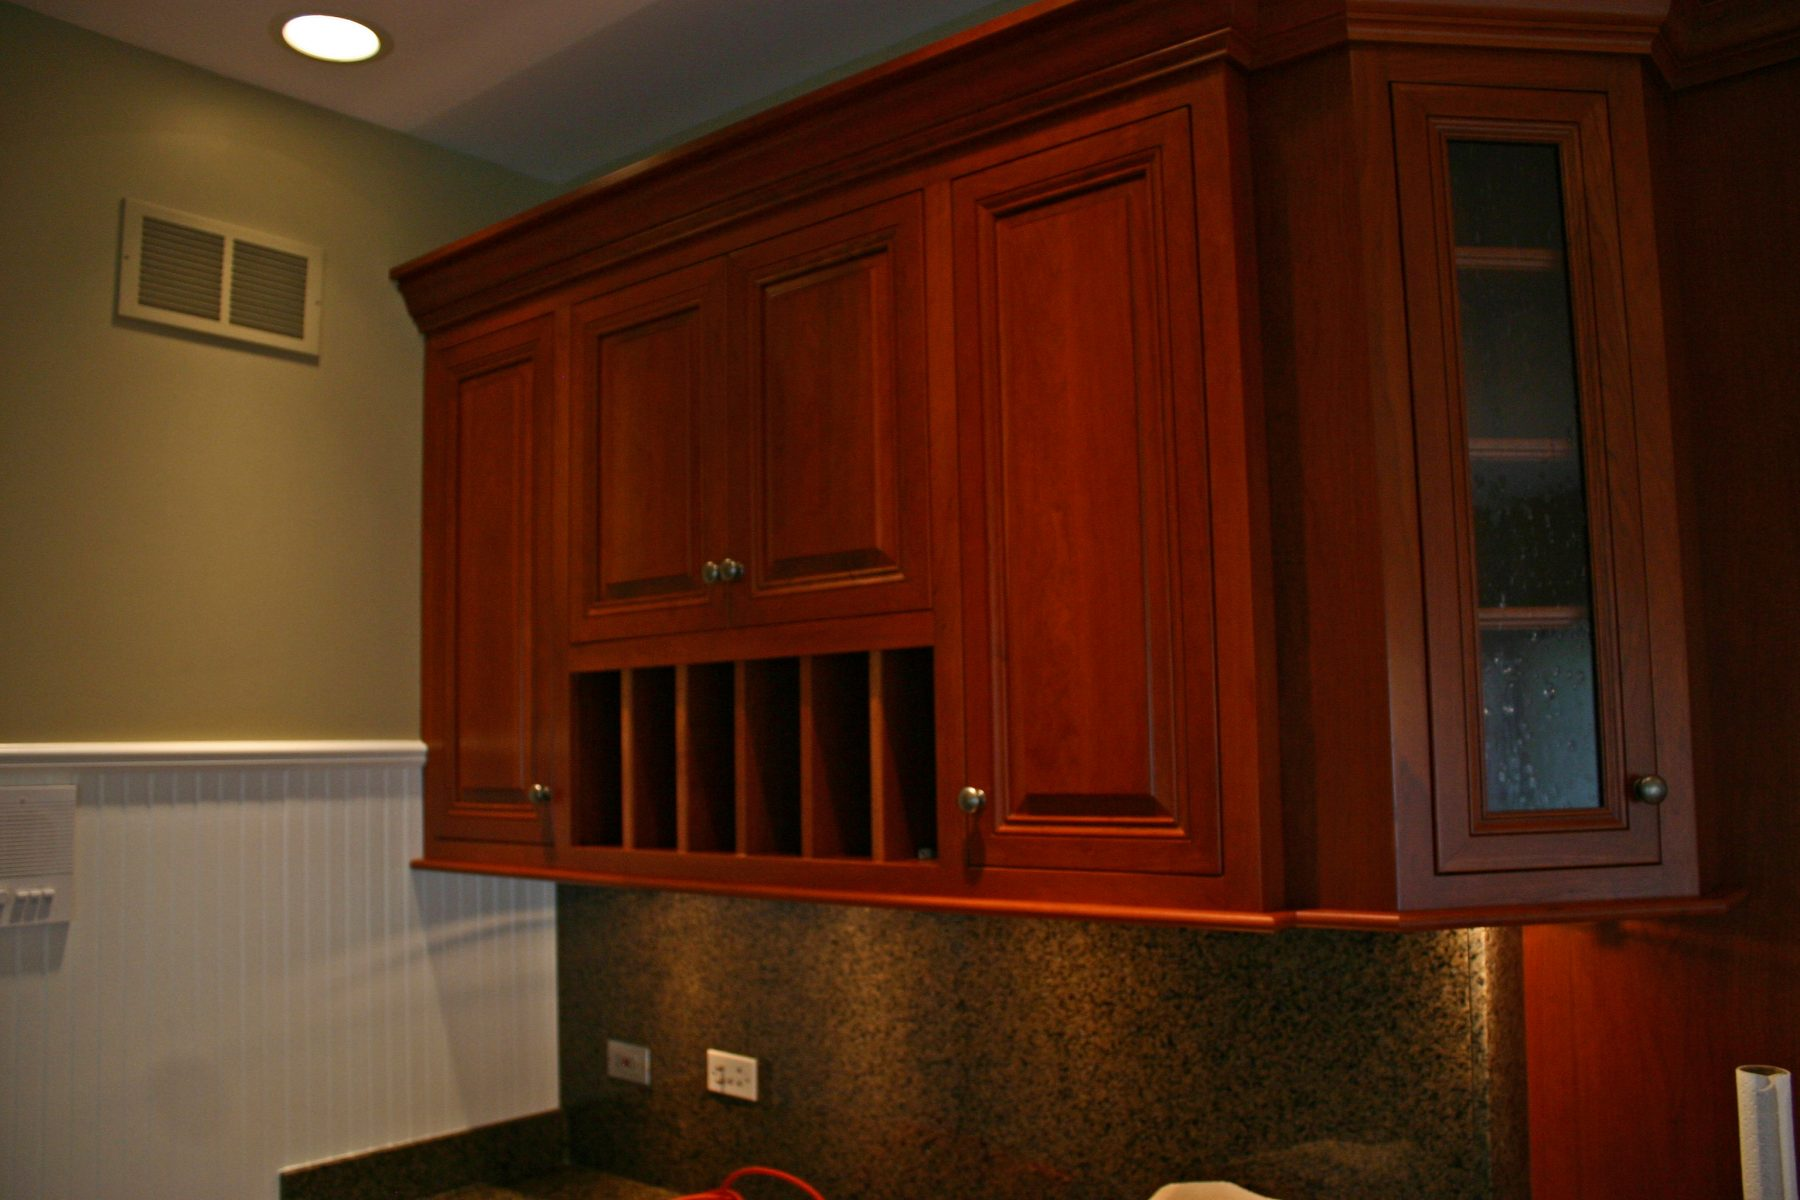 Best return on investment bathroom remodel project for Bathroom remodel return on investment